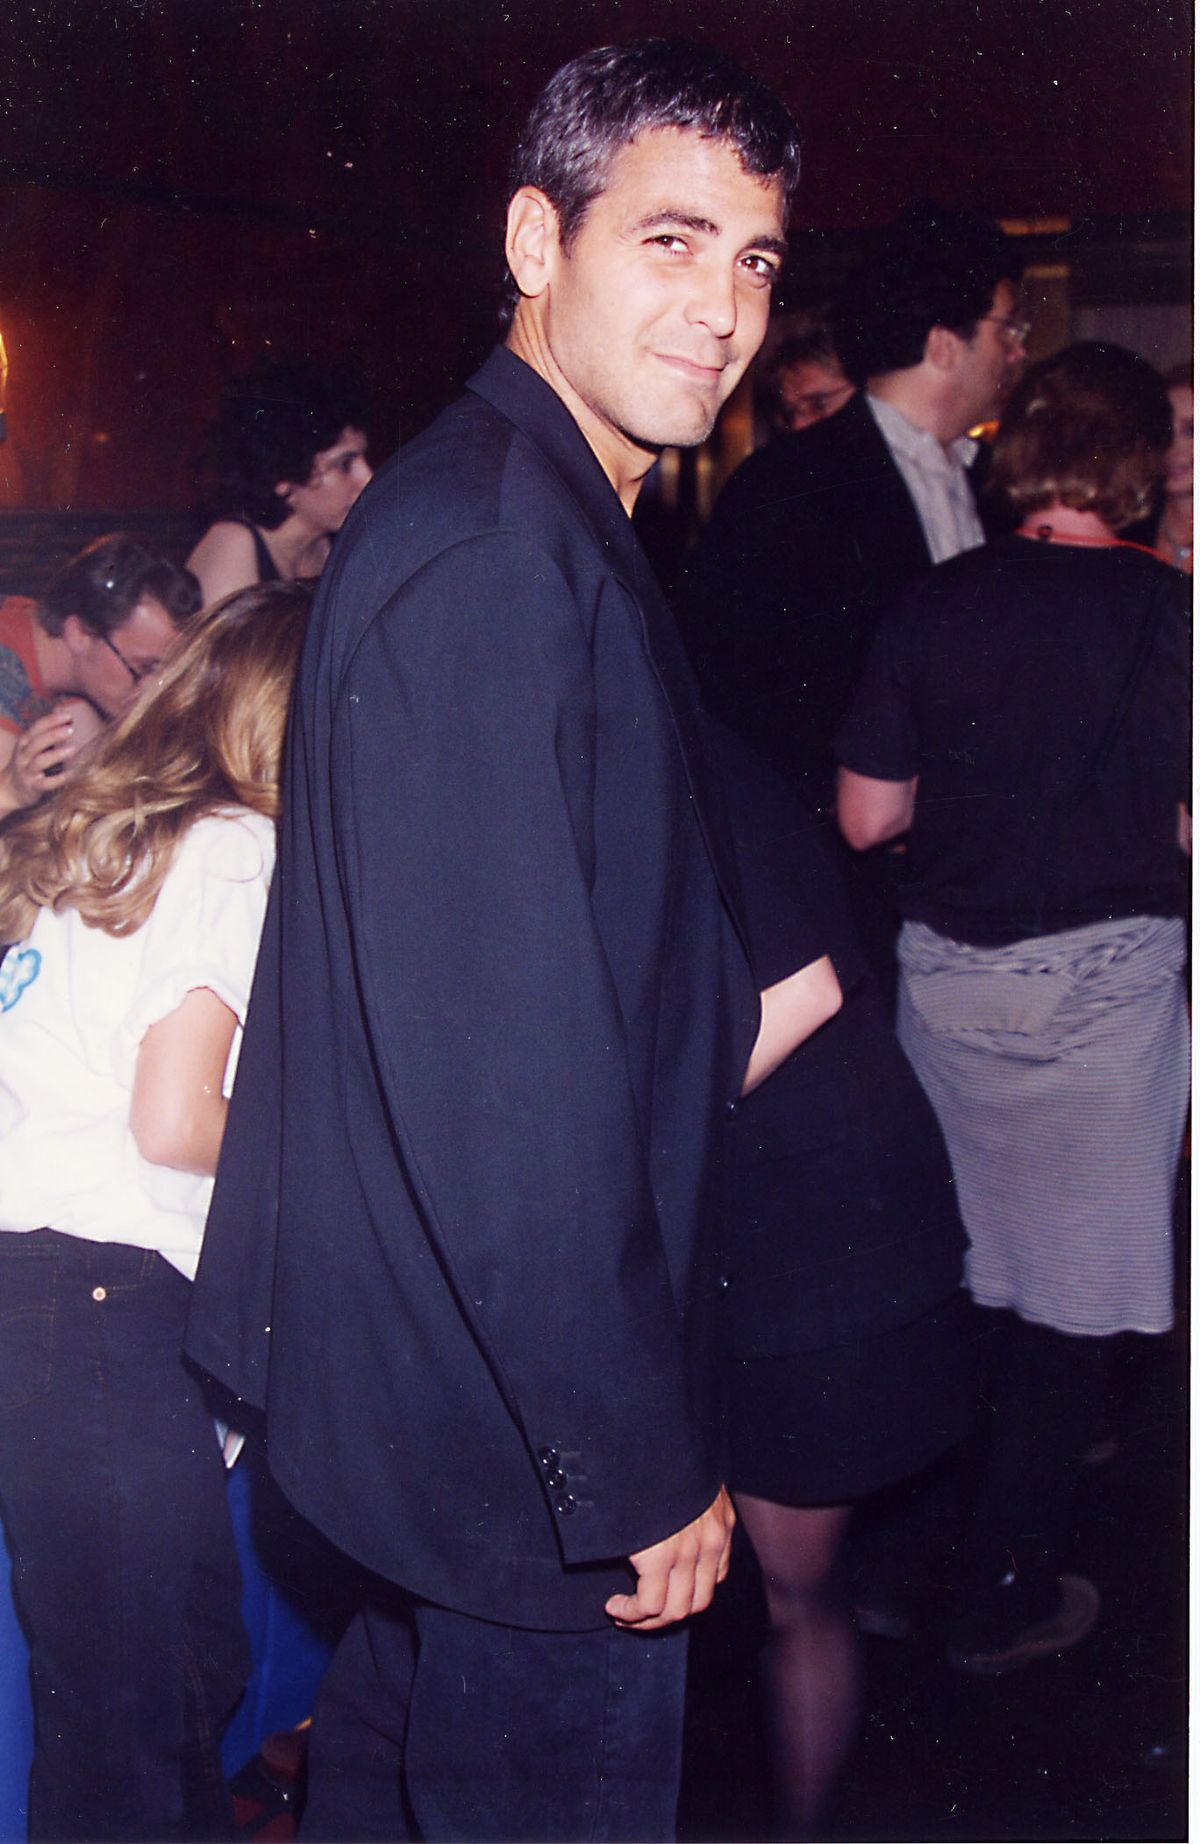 George Clooney at the 1995 MTV Video Music Awards in New York. (Photo by Jeff Kravitz/FilmMagic, Inc)